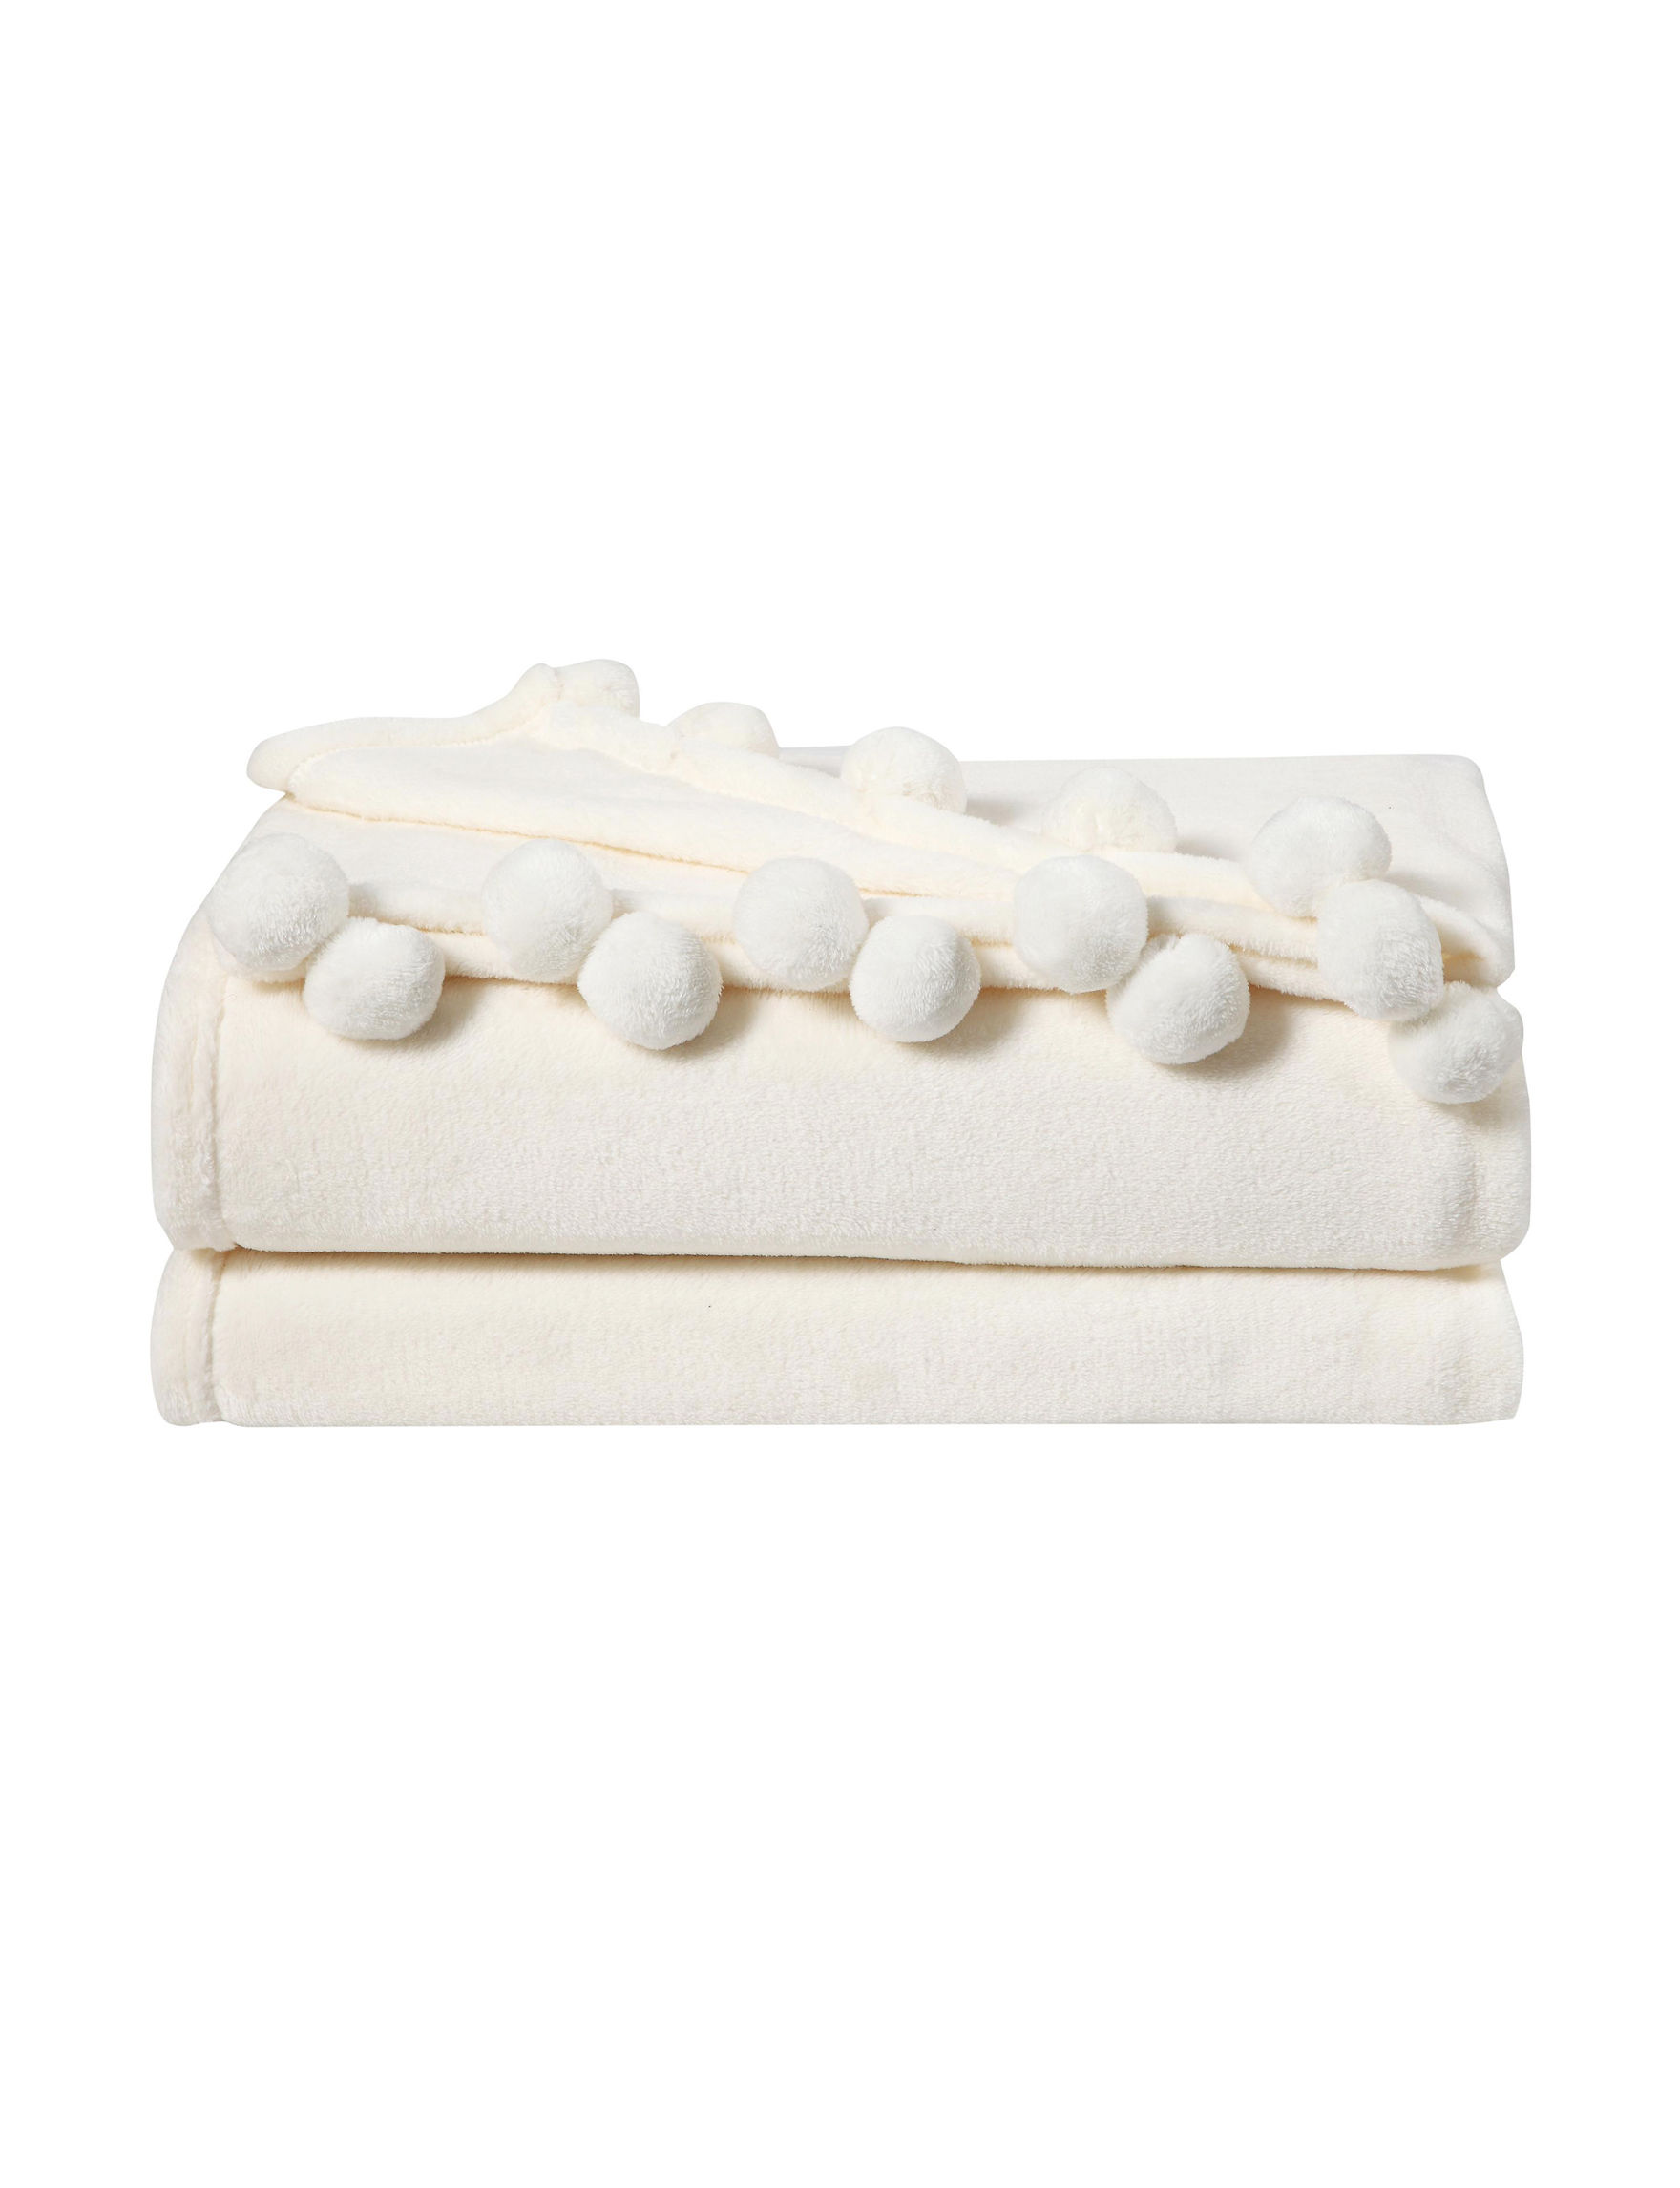 VCNY Home Ivory Blankets & Throws